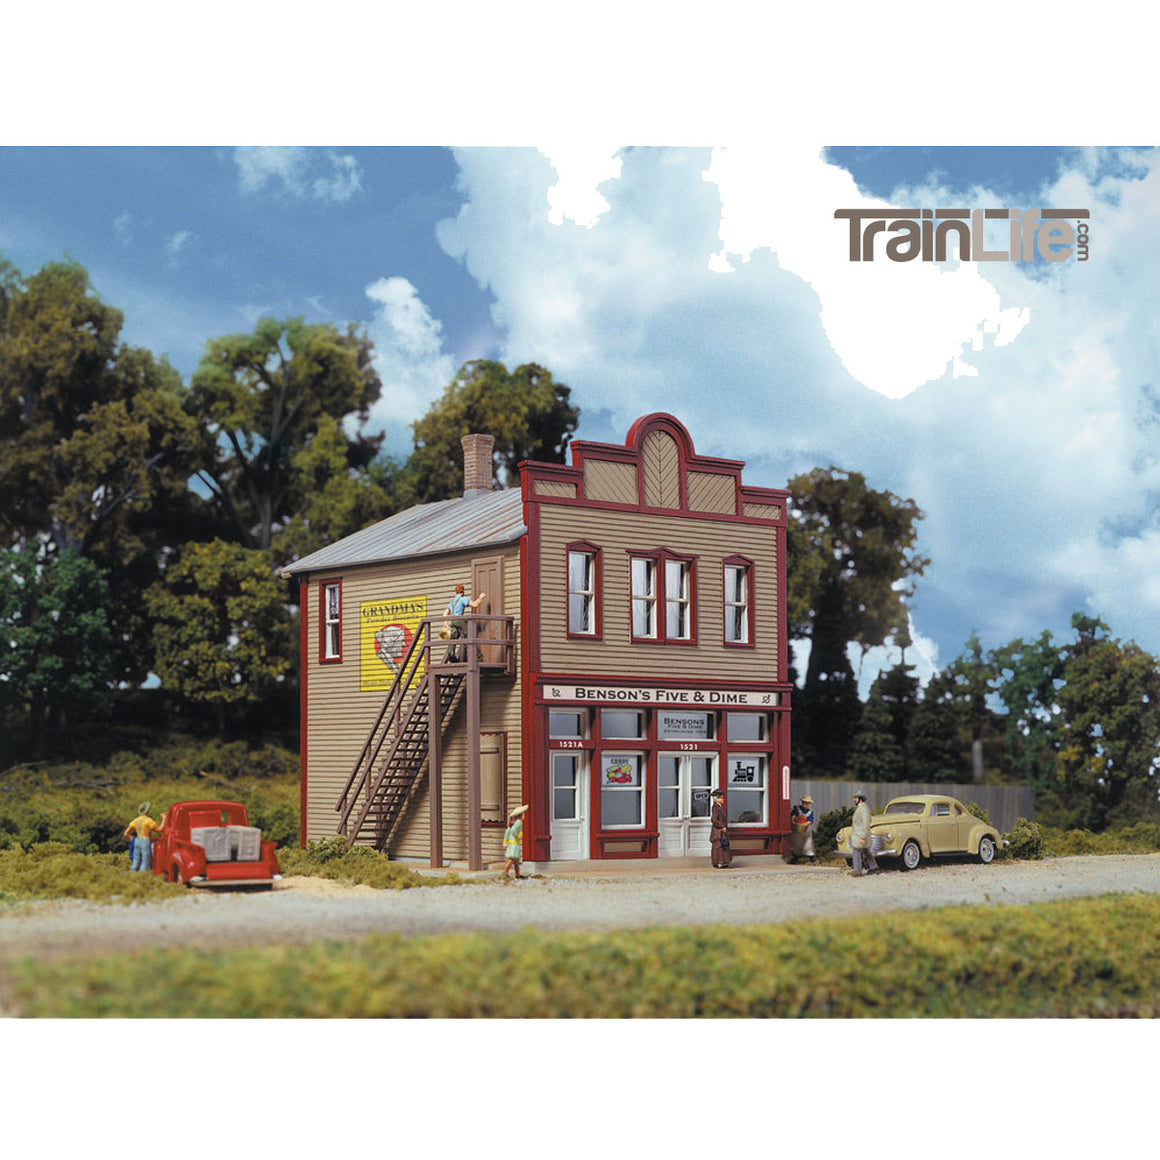 HO Scale Benson's Five and Dime from TrainLife